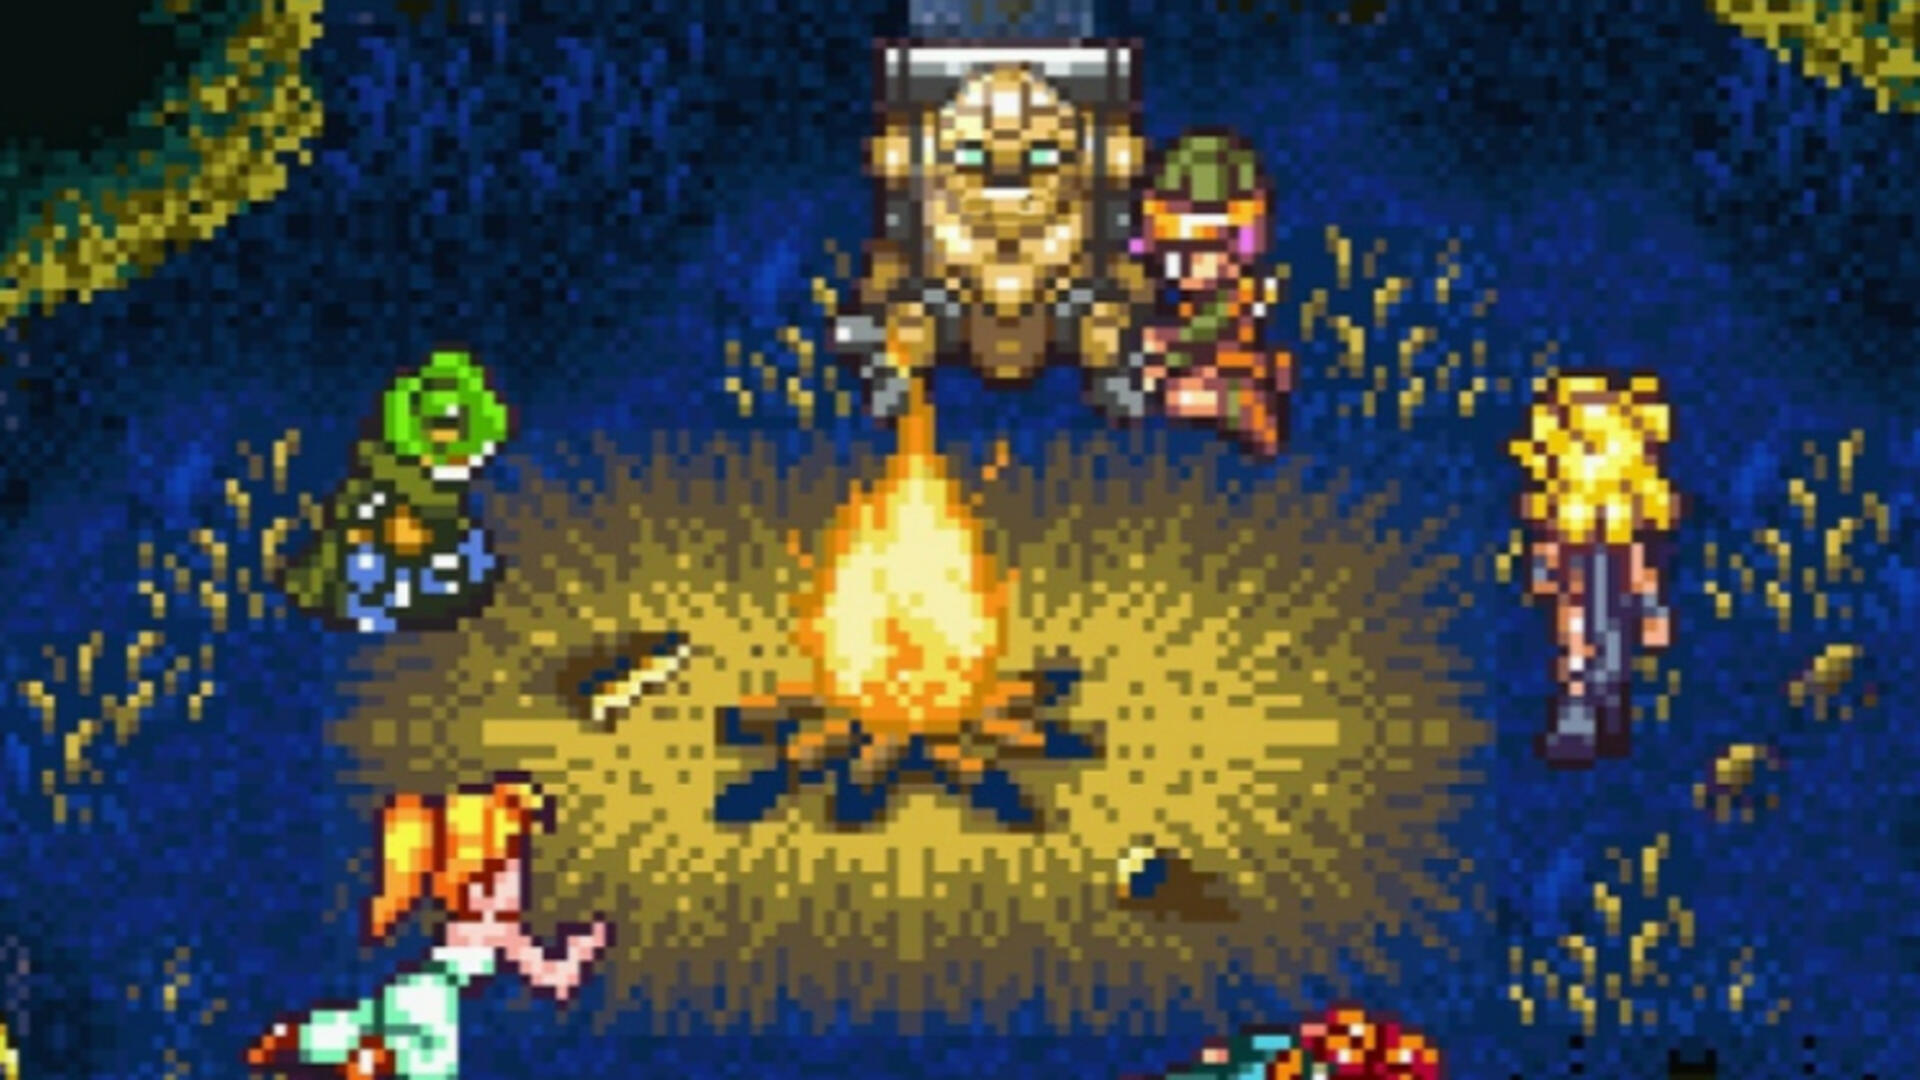 Chrono Trigger on Steam Gets a Final Patch to Fix Maligned PC Version